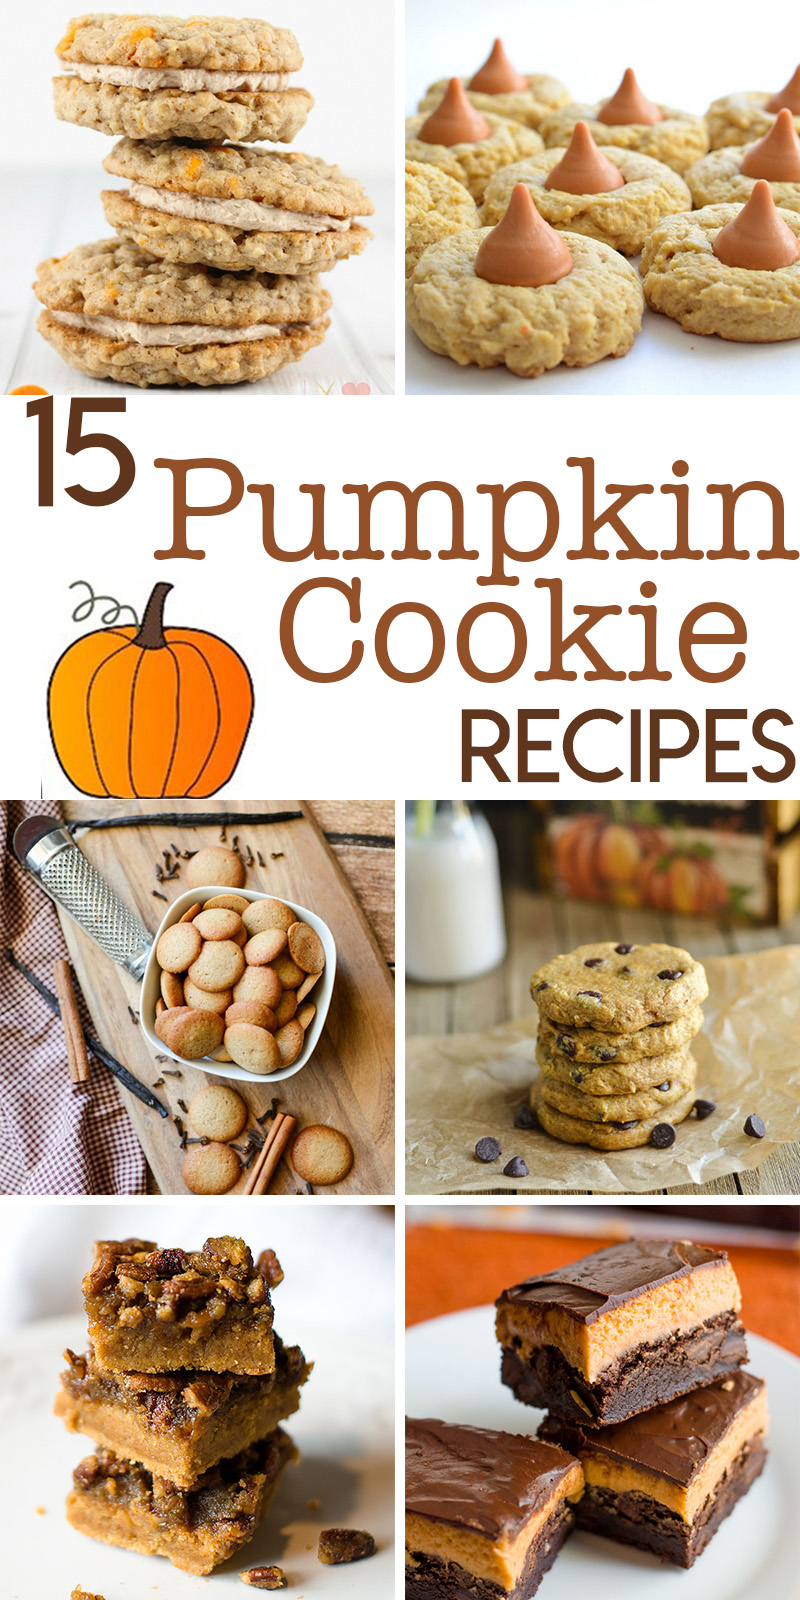 15 Perfectly Delicious Pumpkin Cookie Recipes